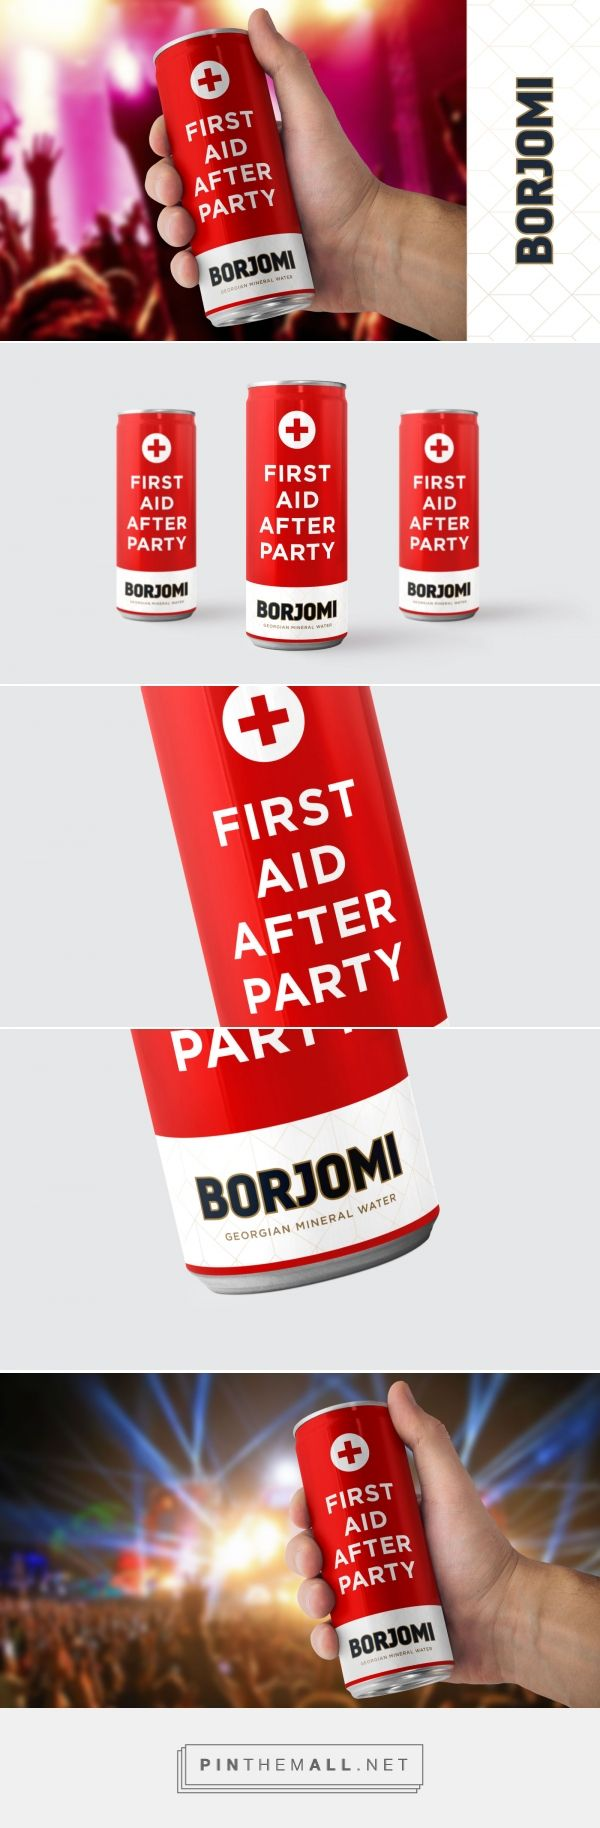 Borjomi First Aid After Party Packaging Design Inspiration First Aid Packaging Inspiration